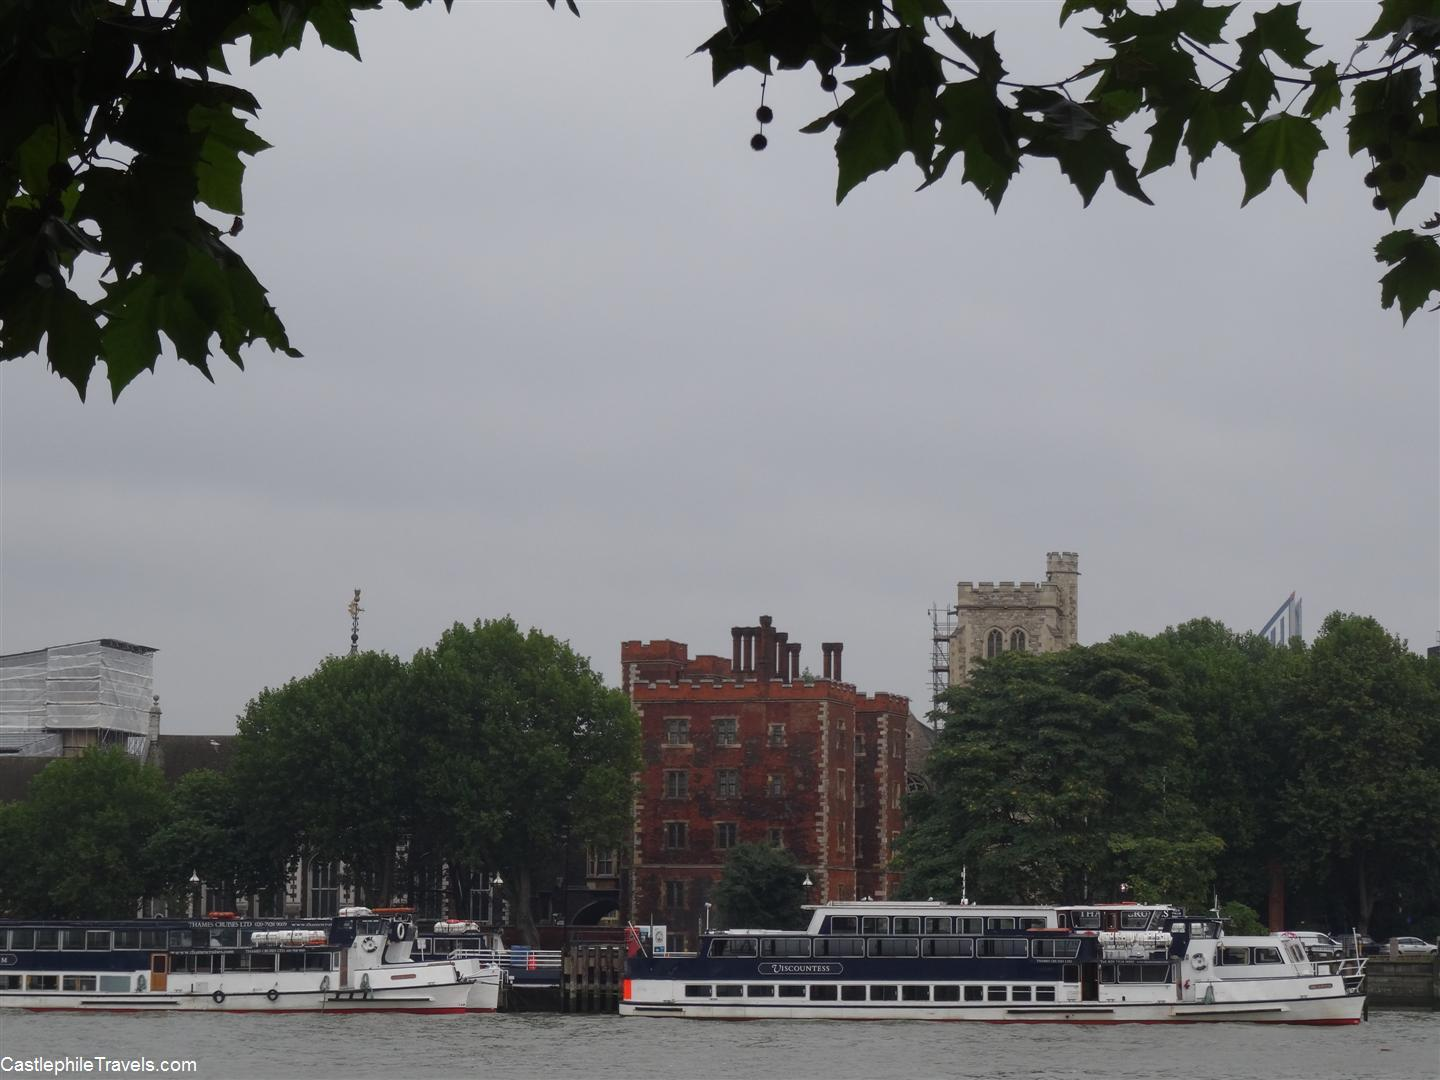 Looking across the Thames towards Lambeth Palace